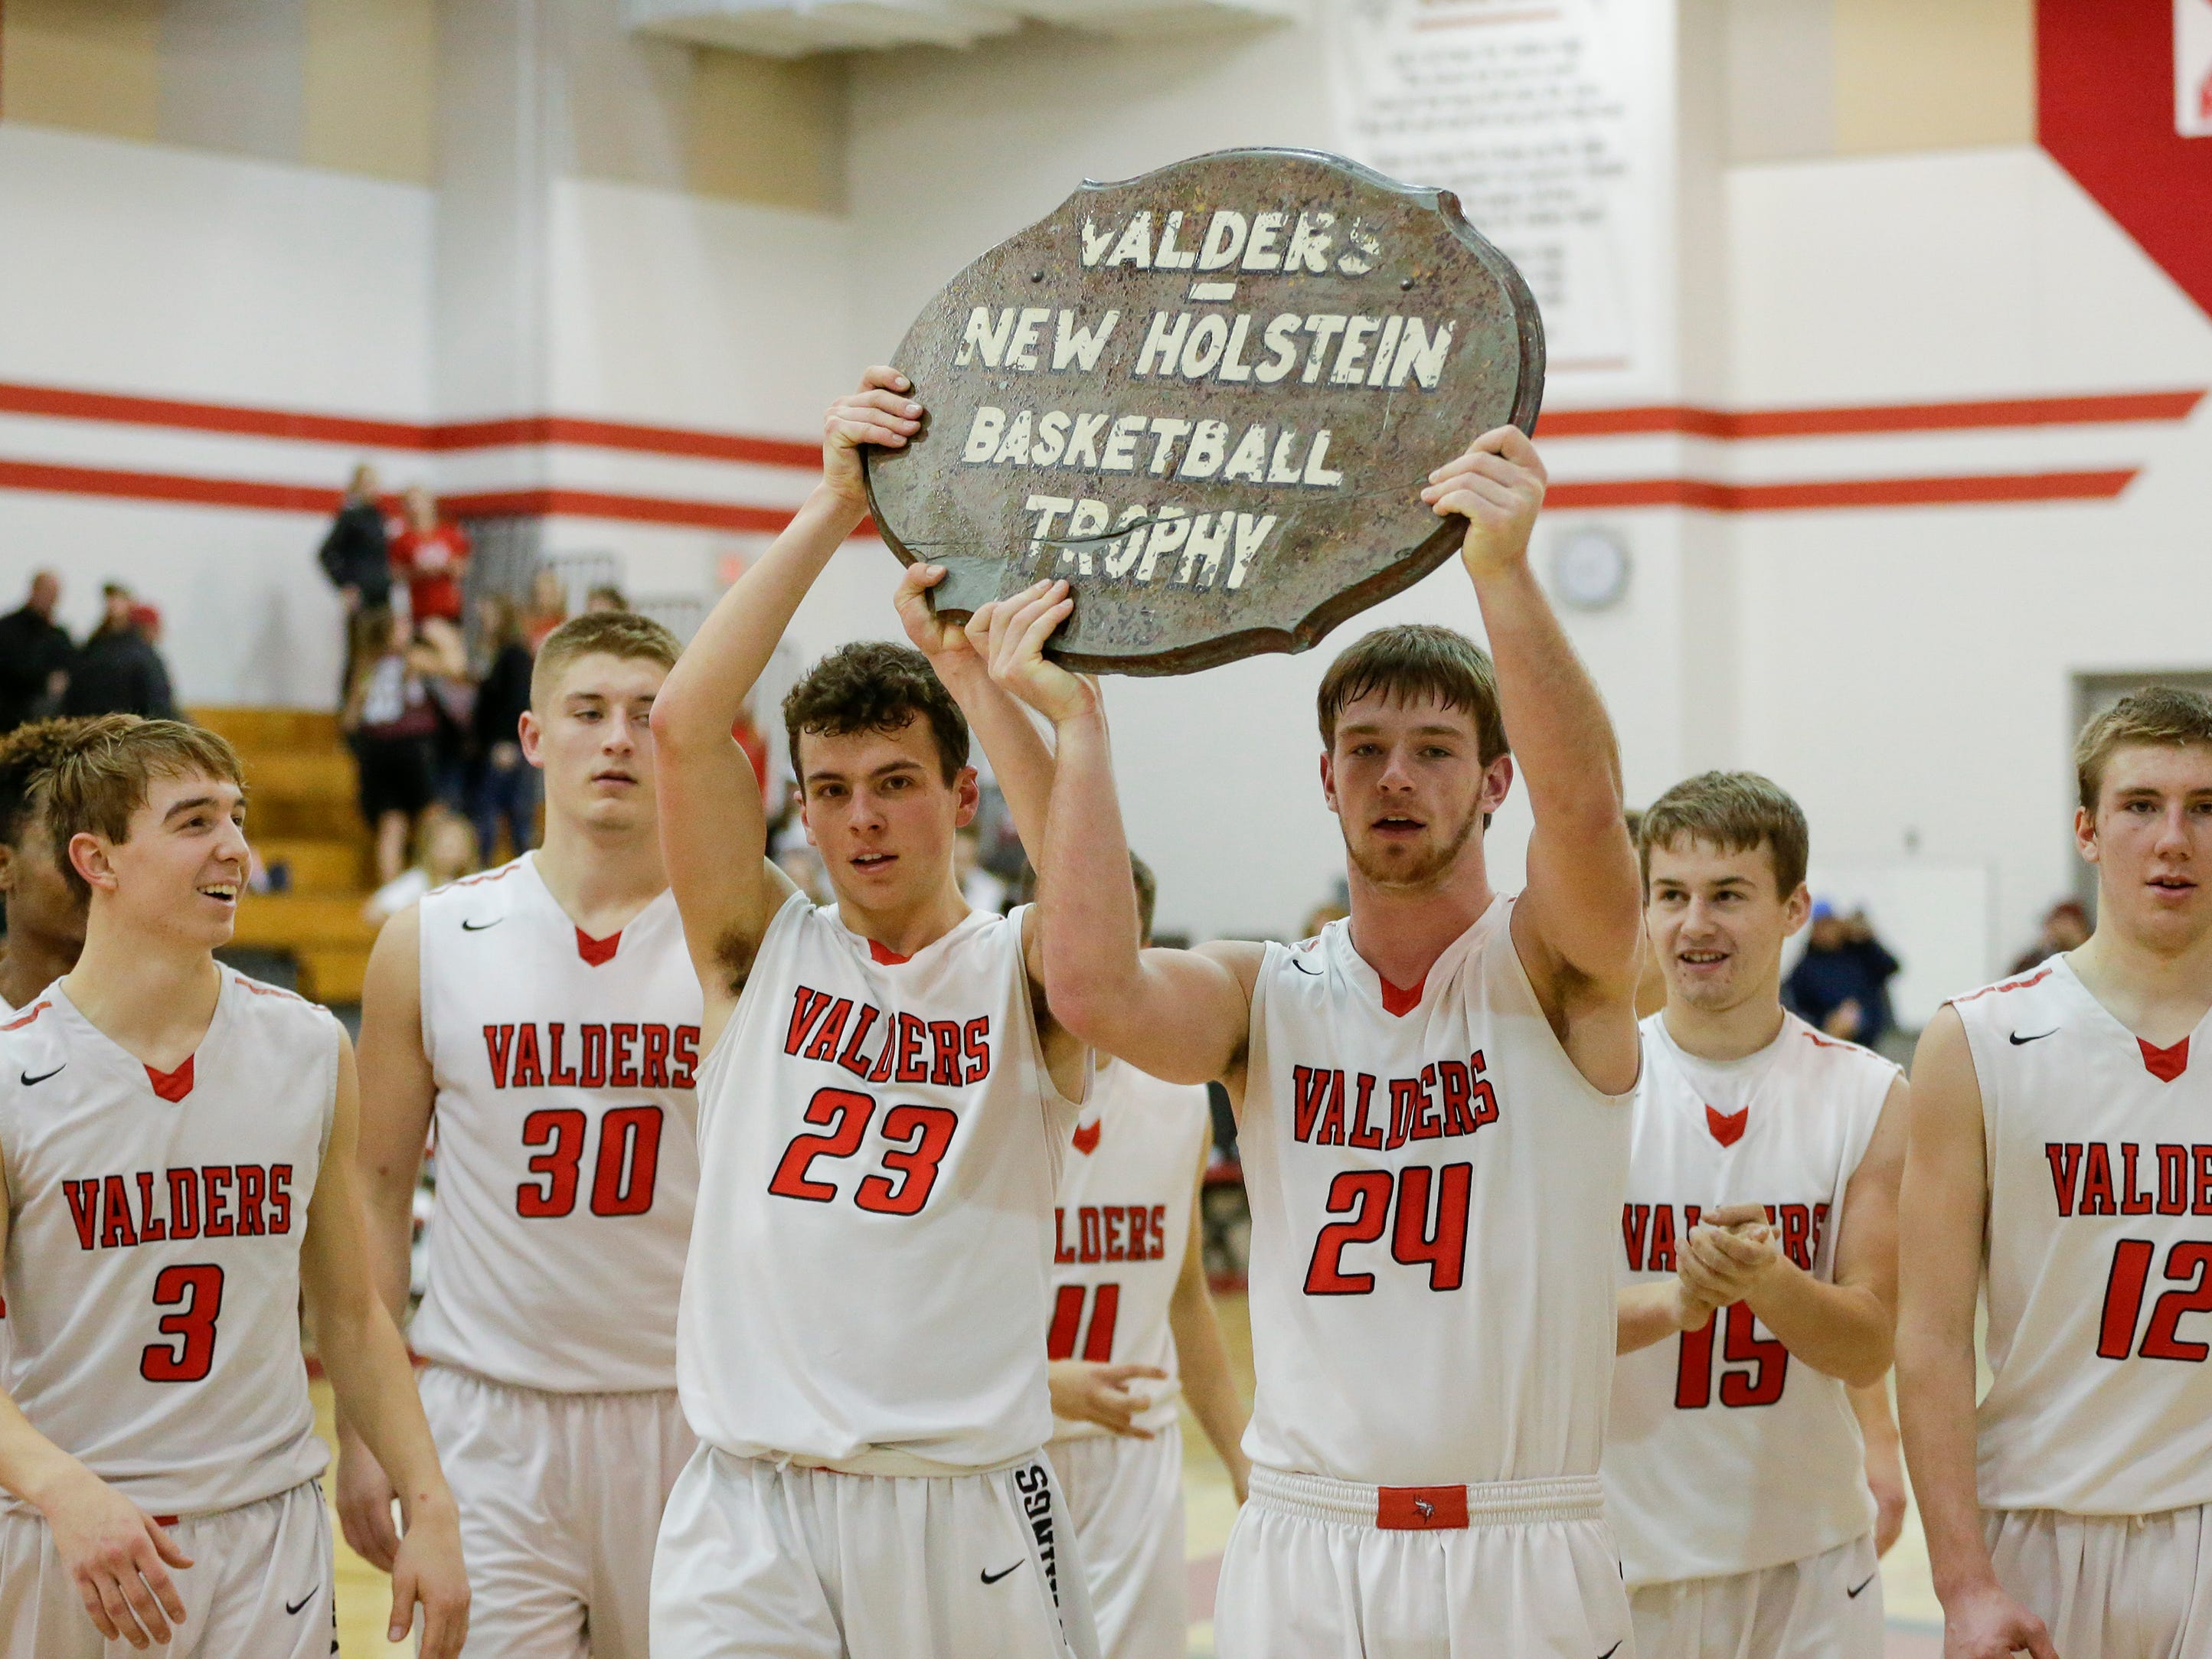 Valders hoists up the coveted Table Top trophy after defeating rival New Holstein in an EWC matchup 55-50 at Valders High School Tuesday, January 15, 2019, in Valders, Wis. The Table Top trophy rivalry game dates back to 1933 well before the teams were in the same conference. Joshua Clark/USA TODAY NETWORK-Wisconsin